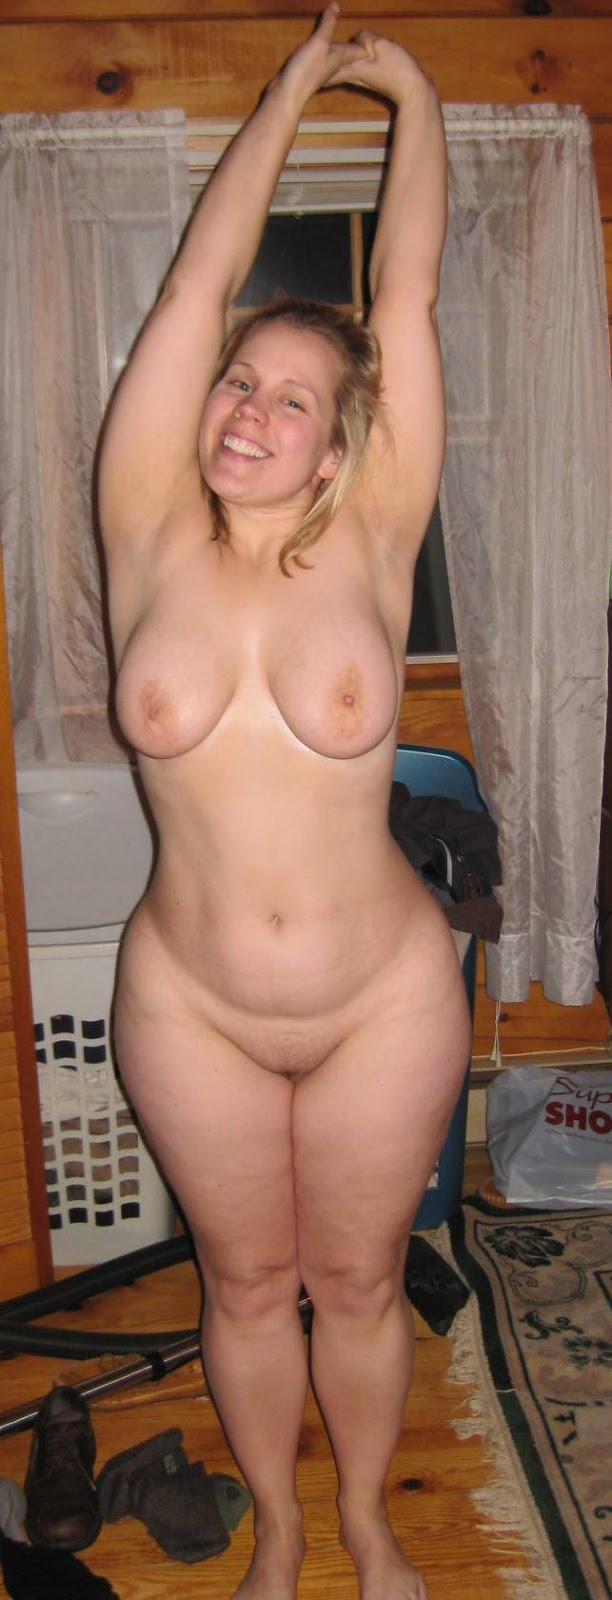 Amateur girls caught nude